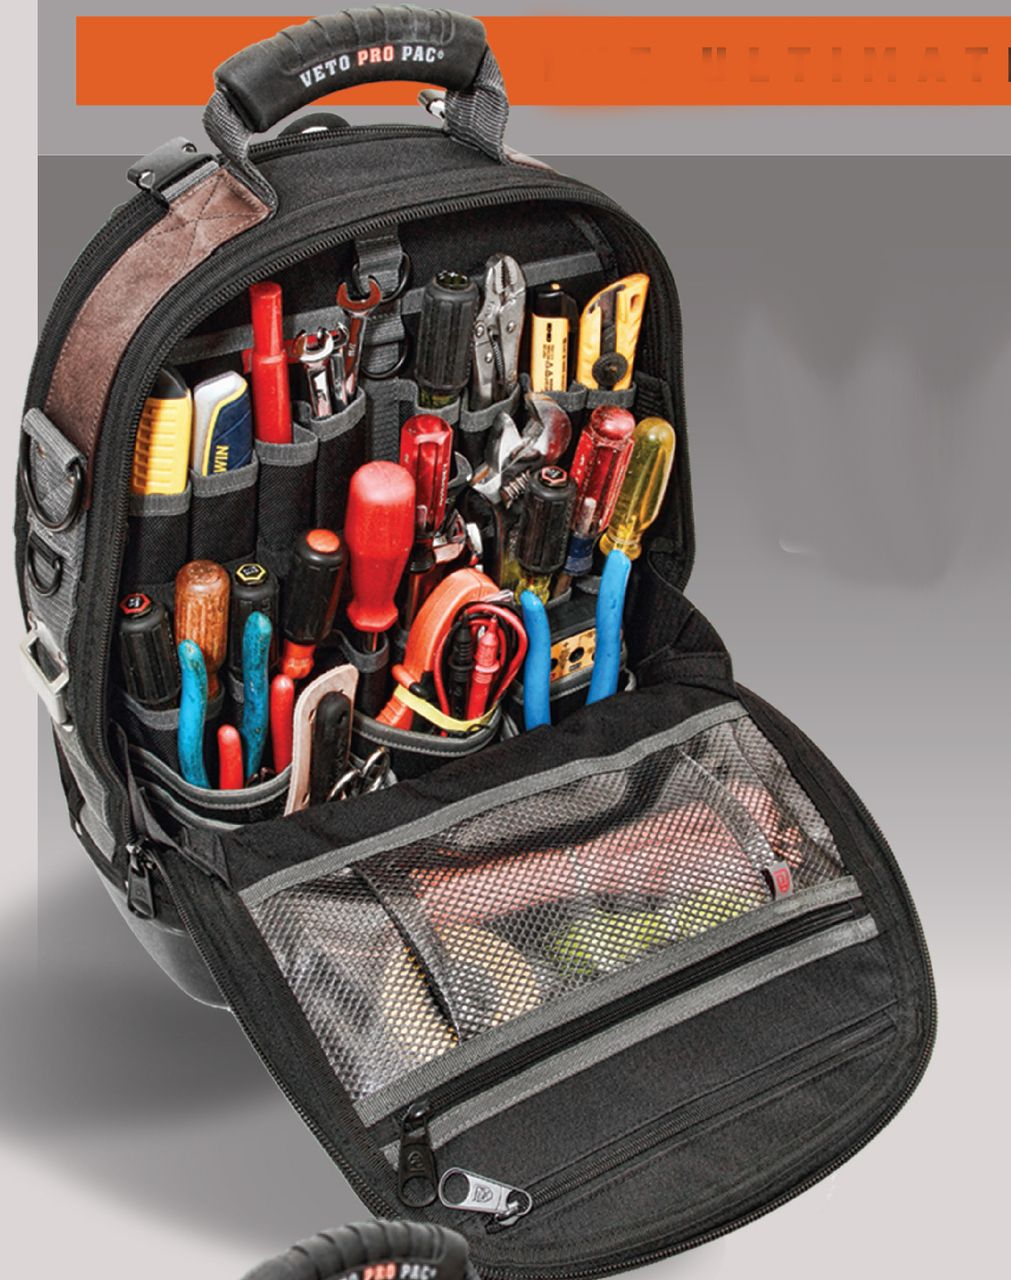 Veto Pro Pac Tech Pac Lt Backpack Tool Bag Tech Bags